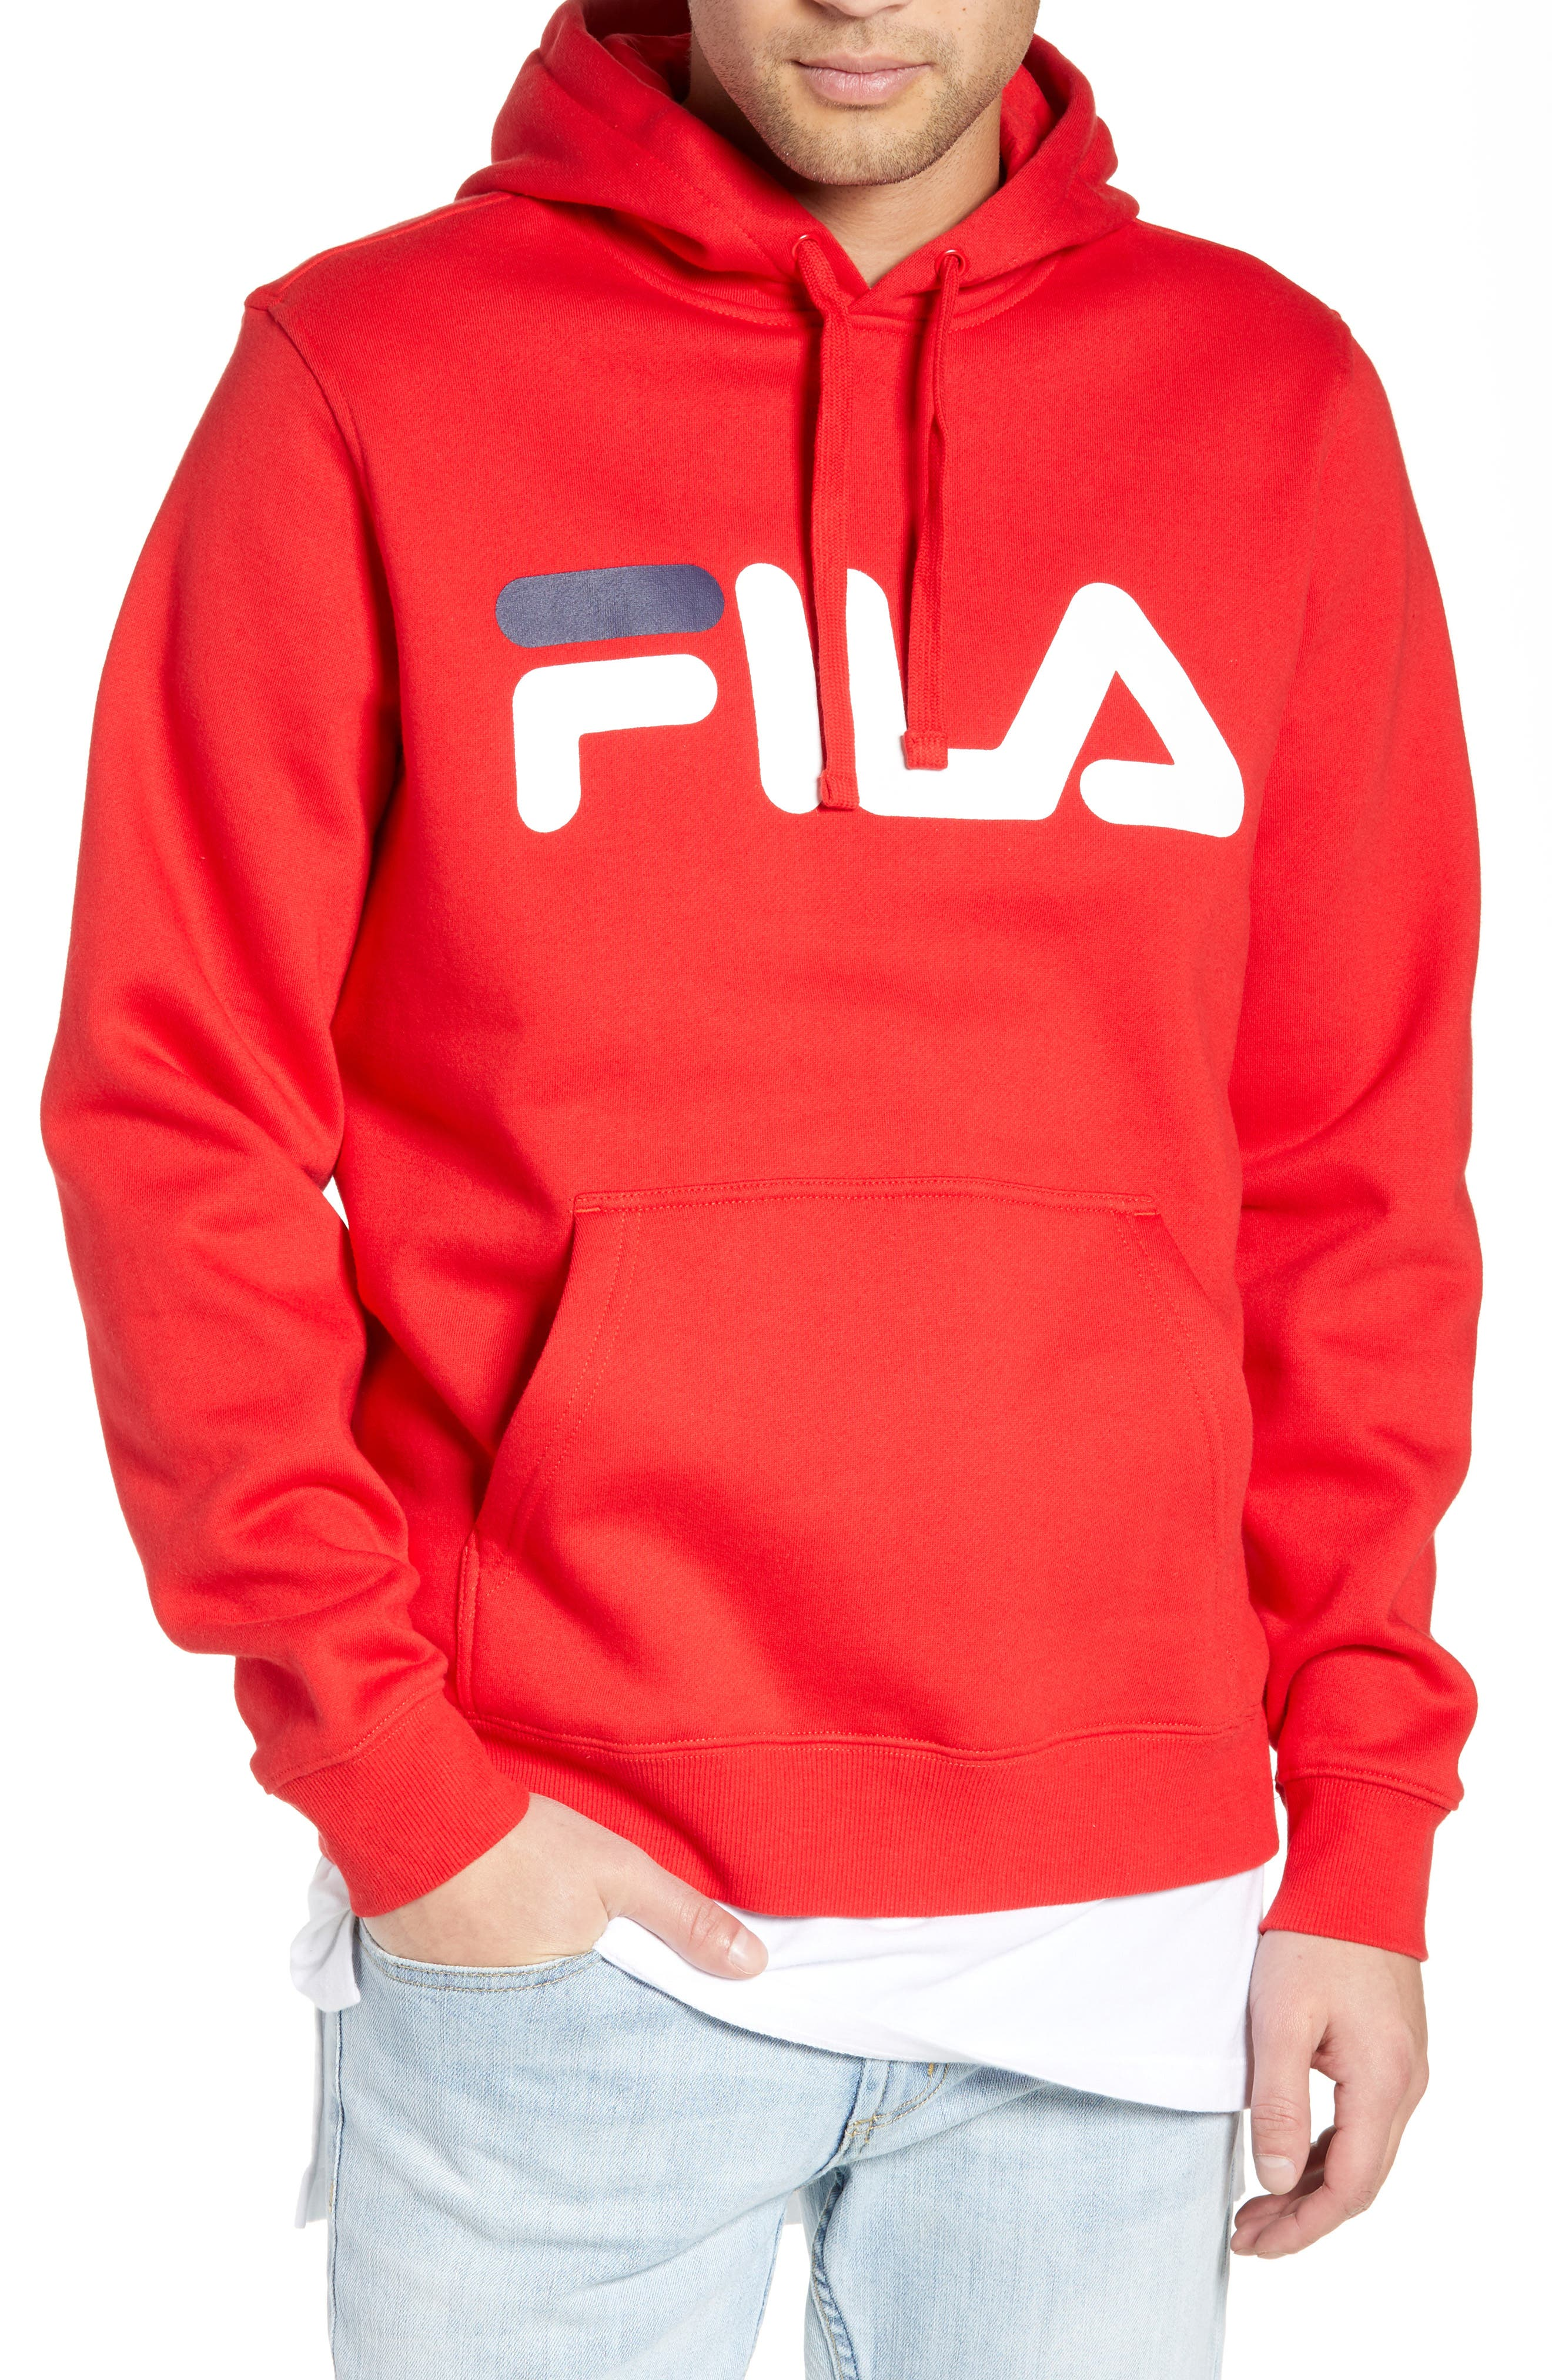 FILA Logo Graphic Hooded Sweatshirt, Main, color, CHINESE RED/ WHITE/ NAVY